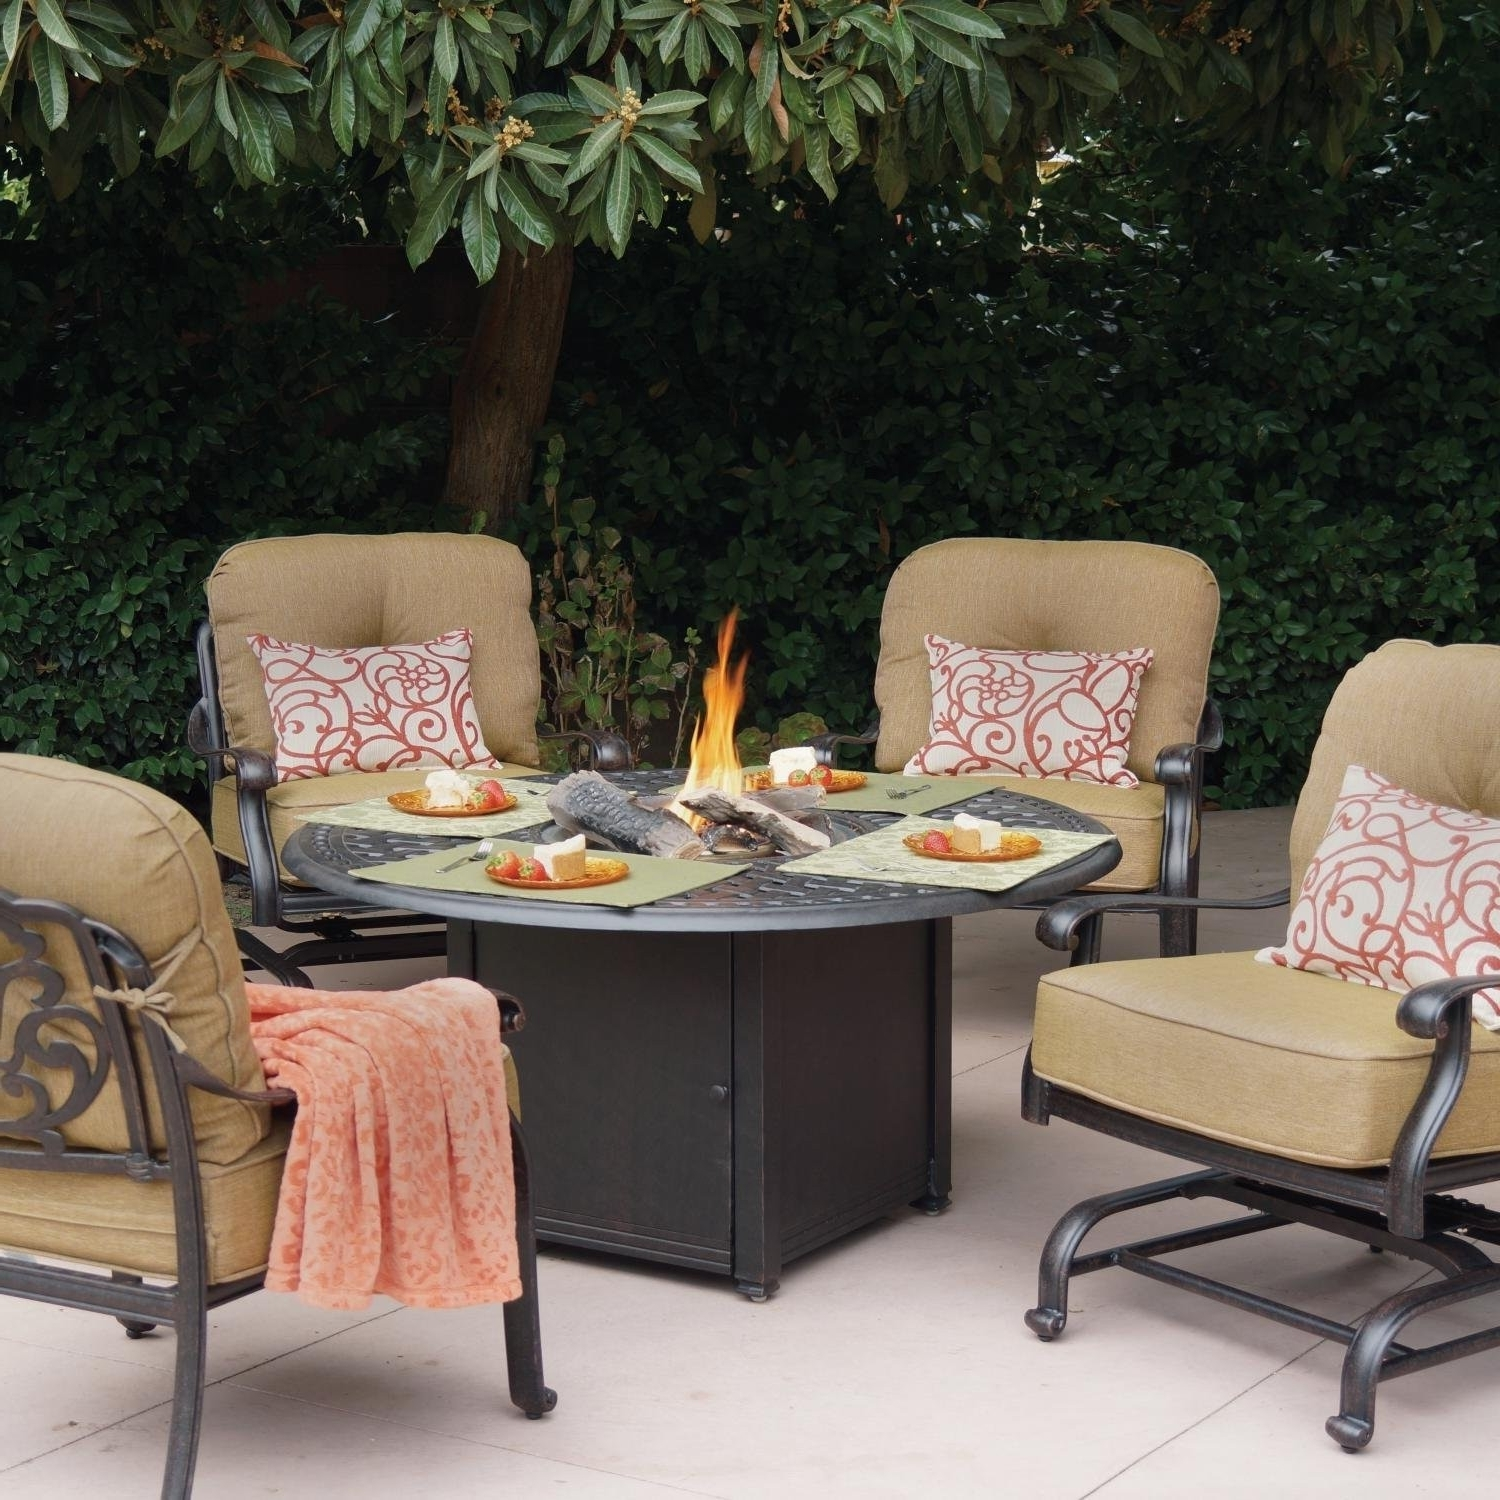 Elisabeth 4 Person Cast Aluminum Patio Conversation Set With Fire Throughout Most Recently Released Aluminum Patio Conversation Sets (View 9 of 20)